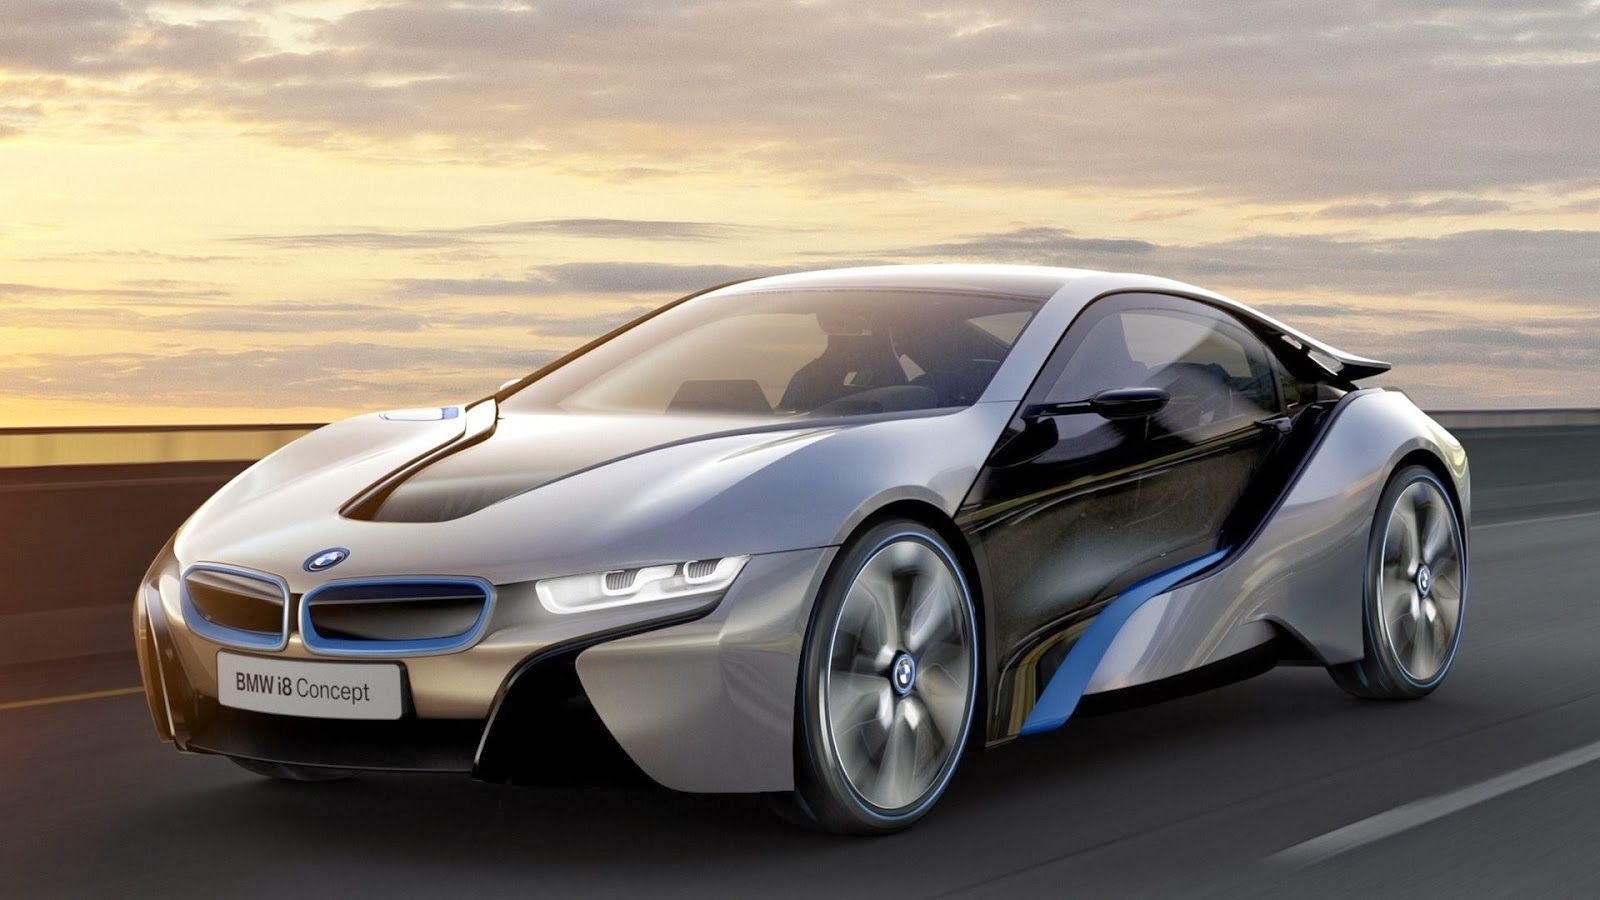 Hd wallpapers download bmw i8 cars hd wallpapers 1080p - Bmw cars wallpapers hd free download ...